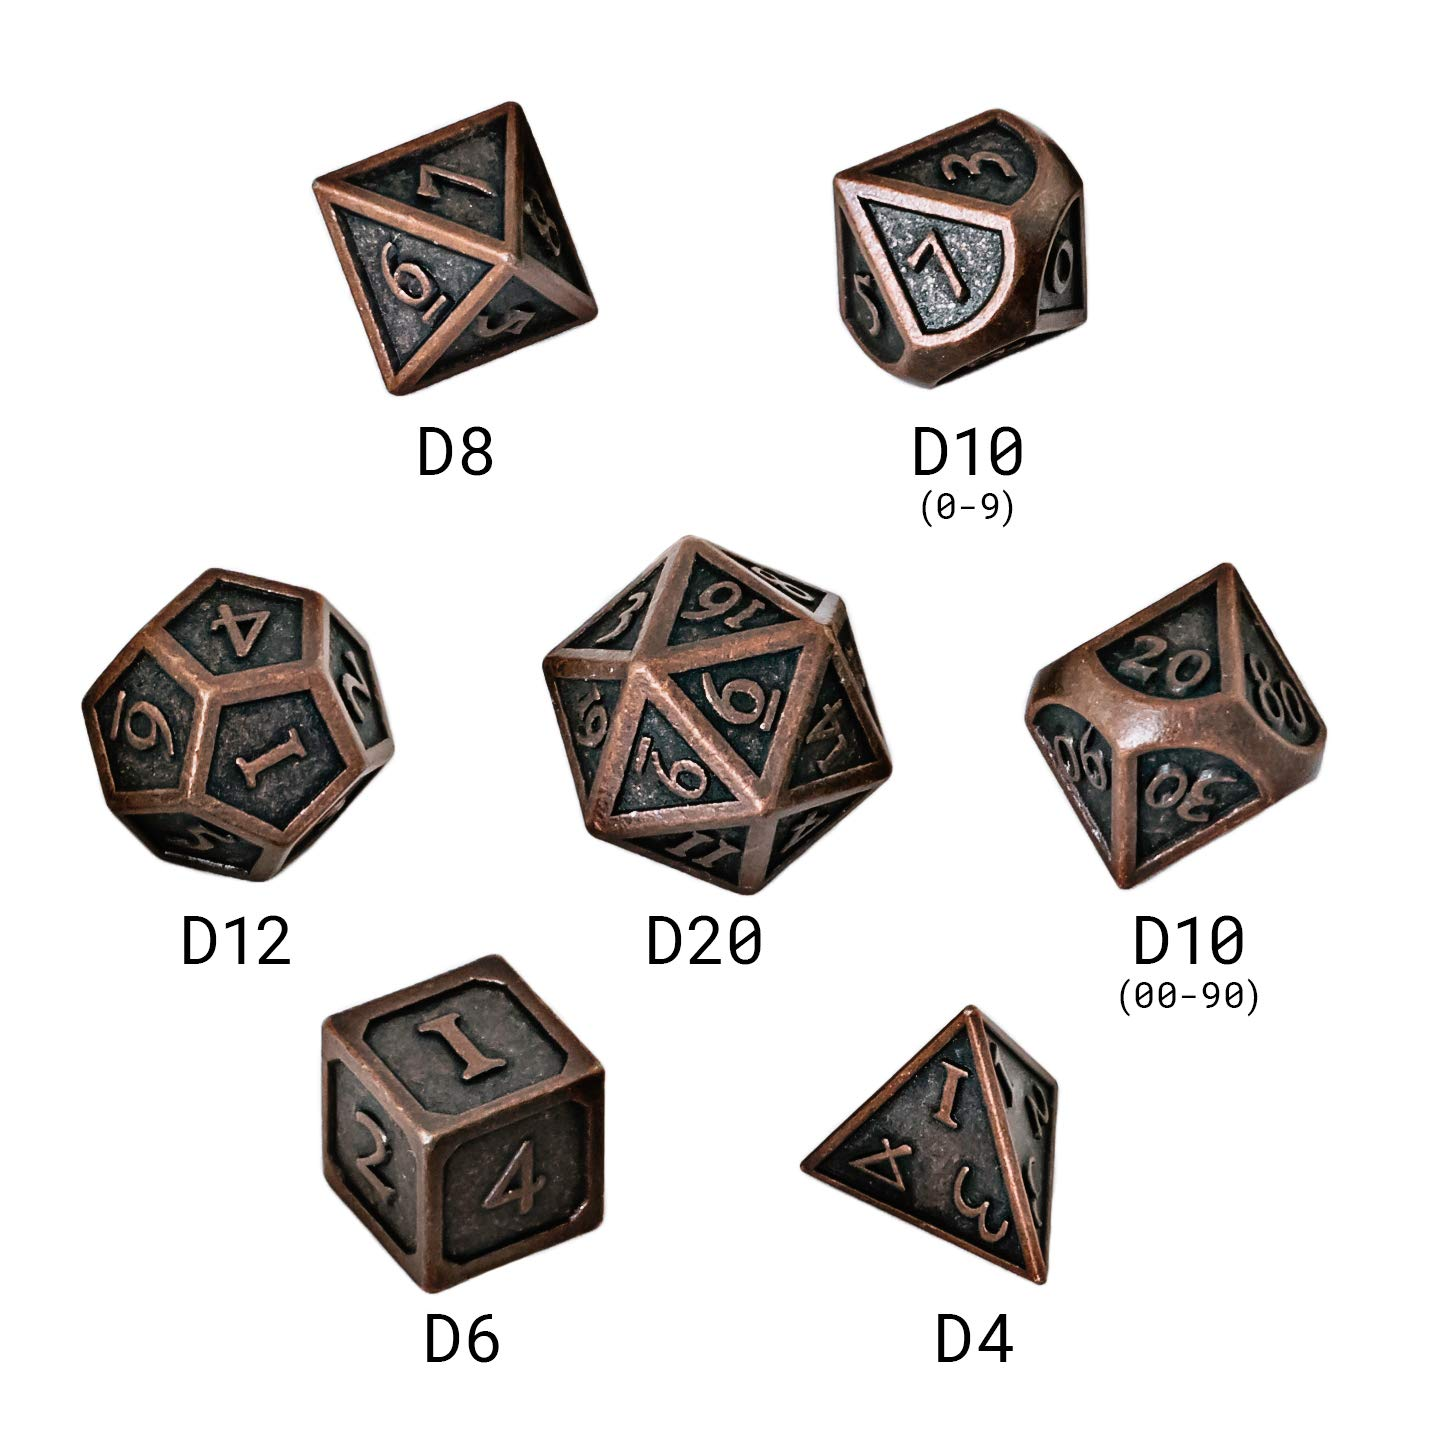 Blacksmith Craft DND Metal dice RPG Used in Dungeon and Dragon dice Games The Coolest Gift for Role Playing Science Magic Collection dice Set